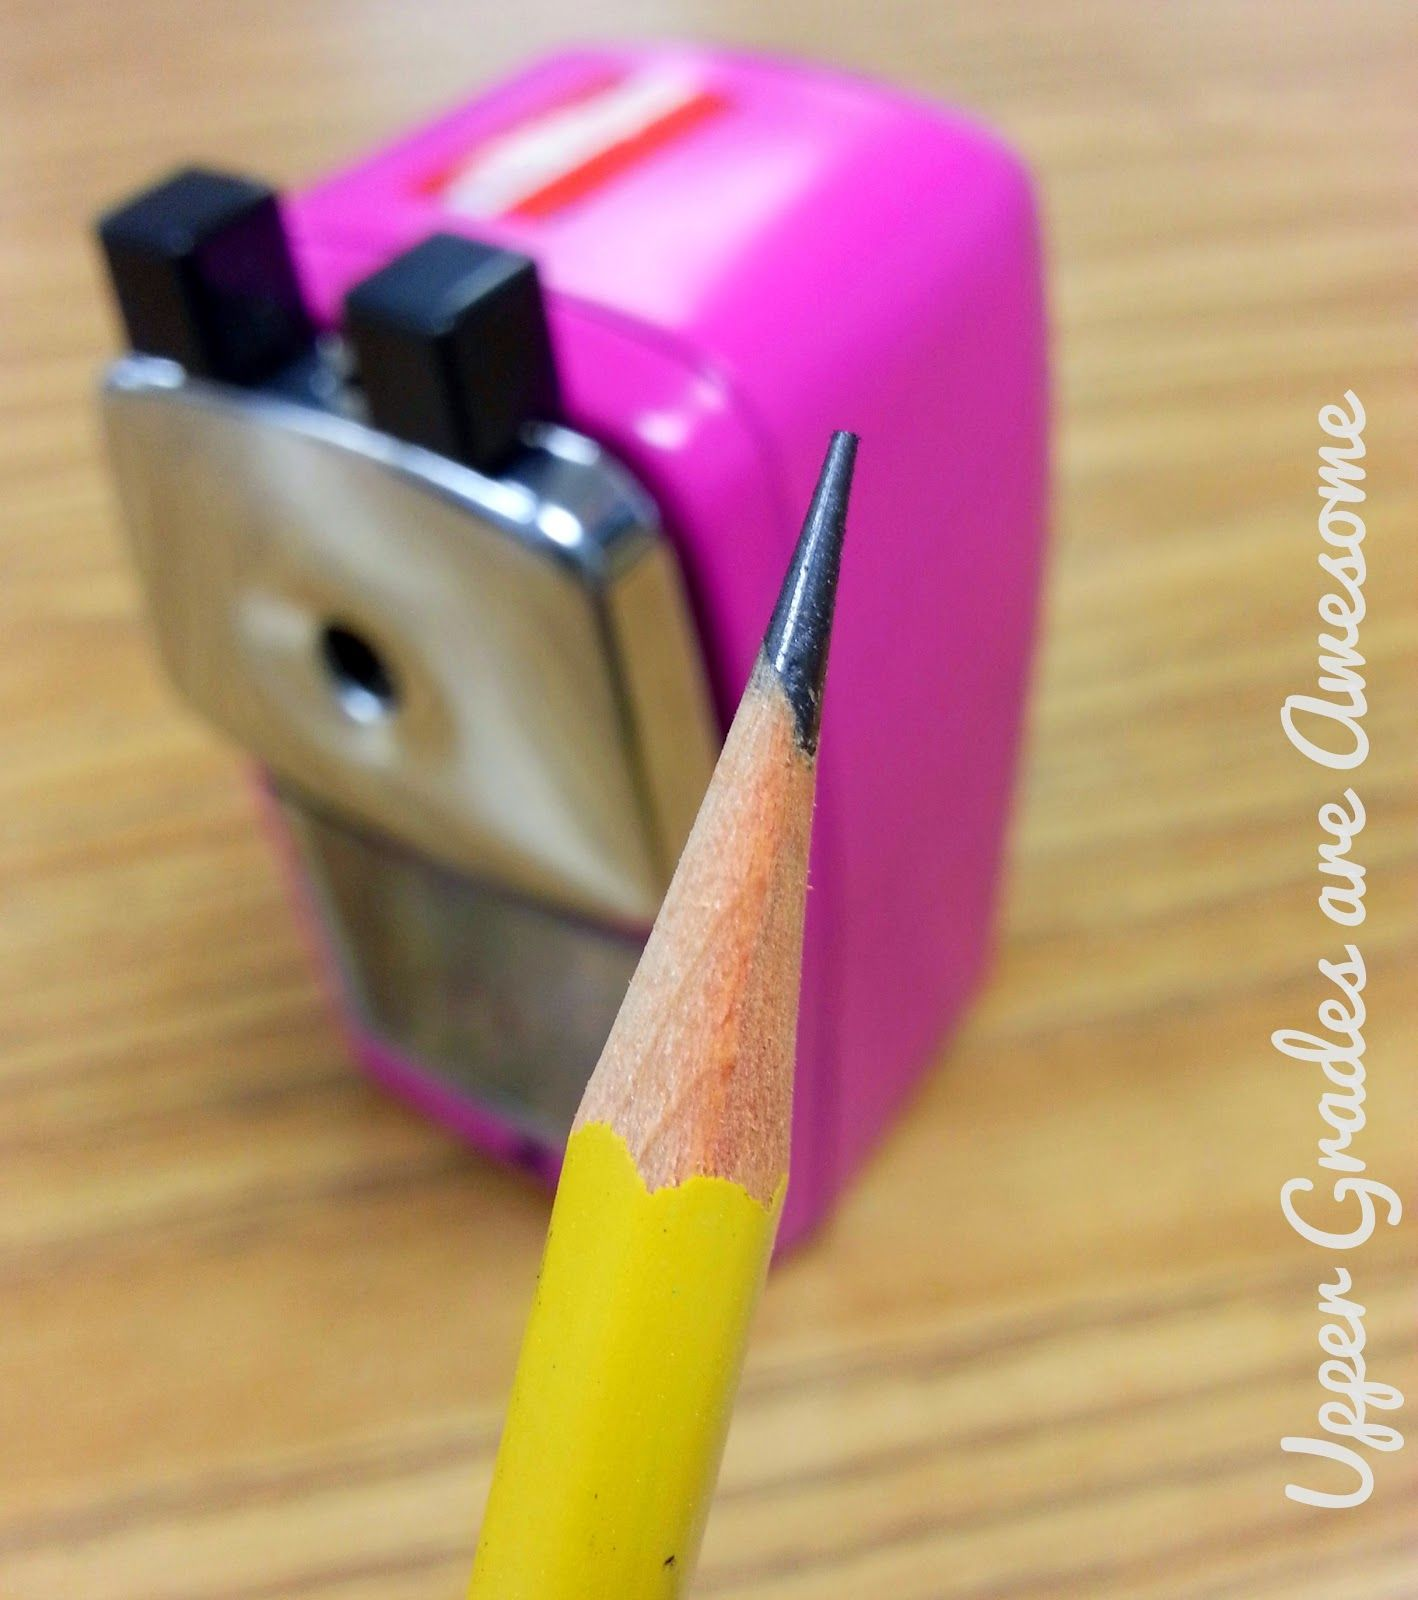 Best pencil sharpener ever i need to get one every year